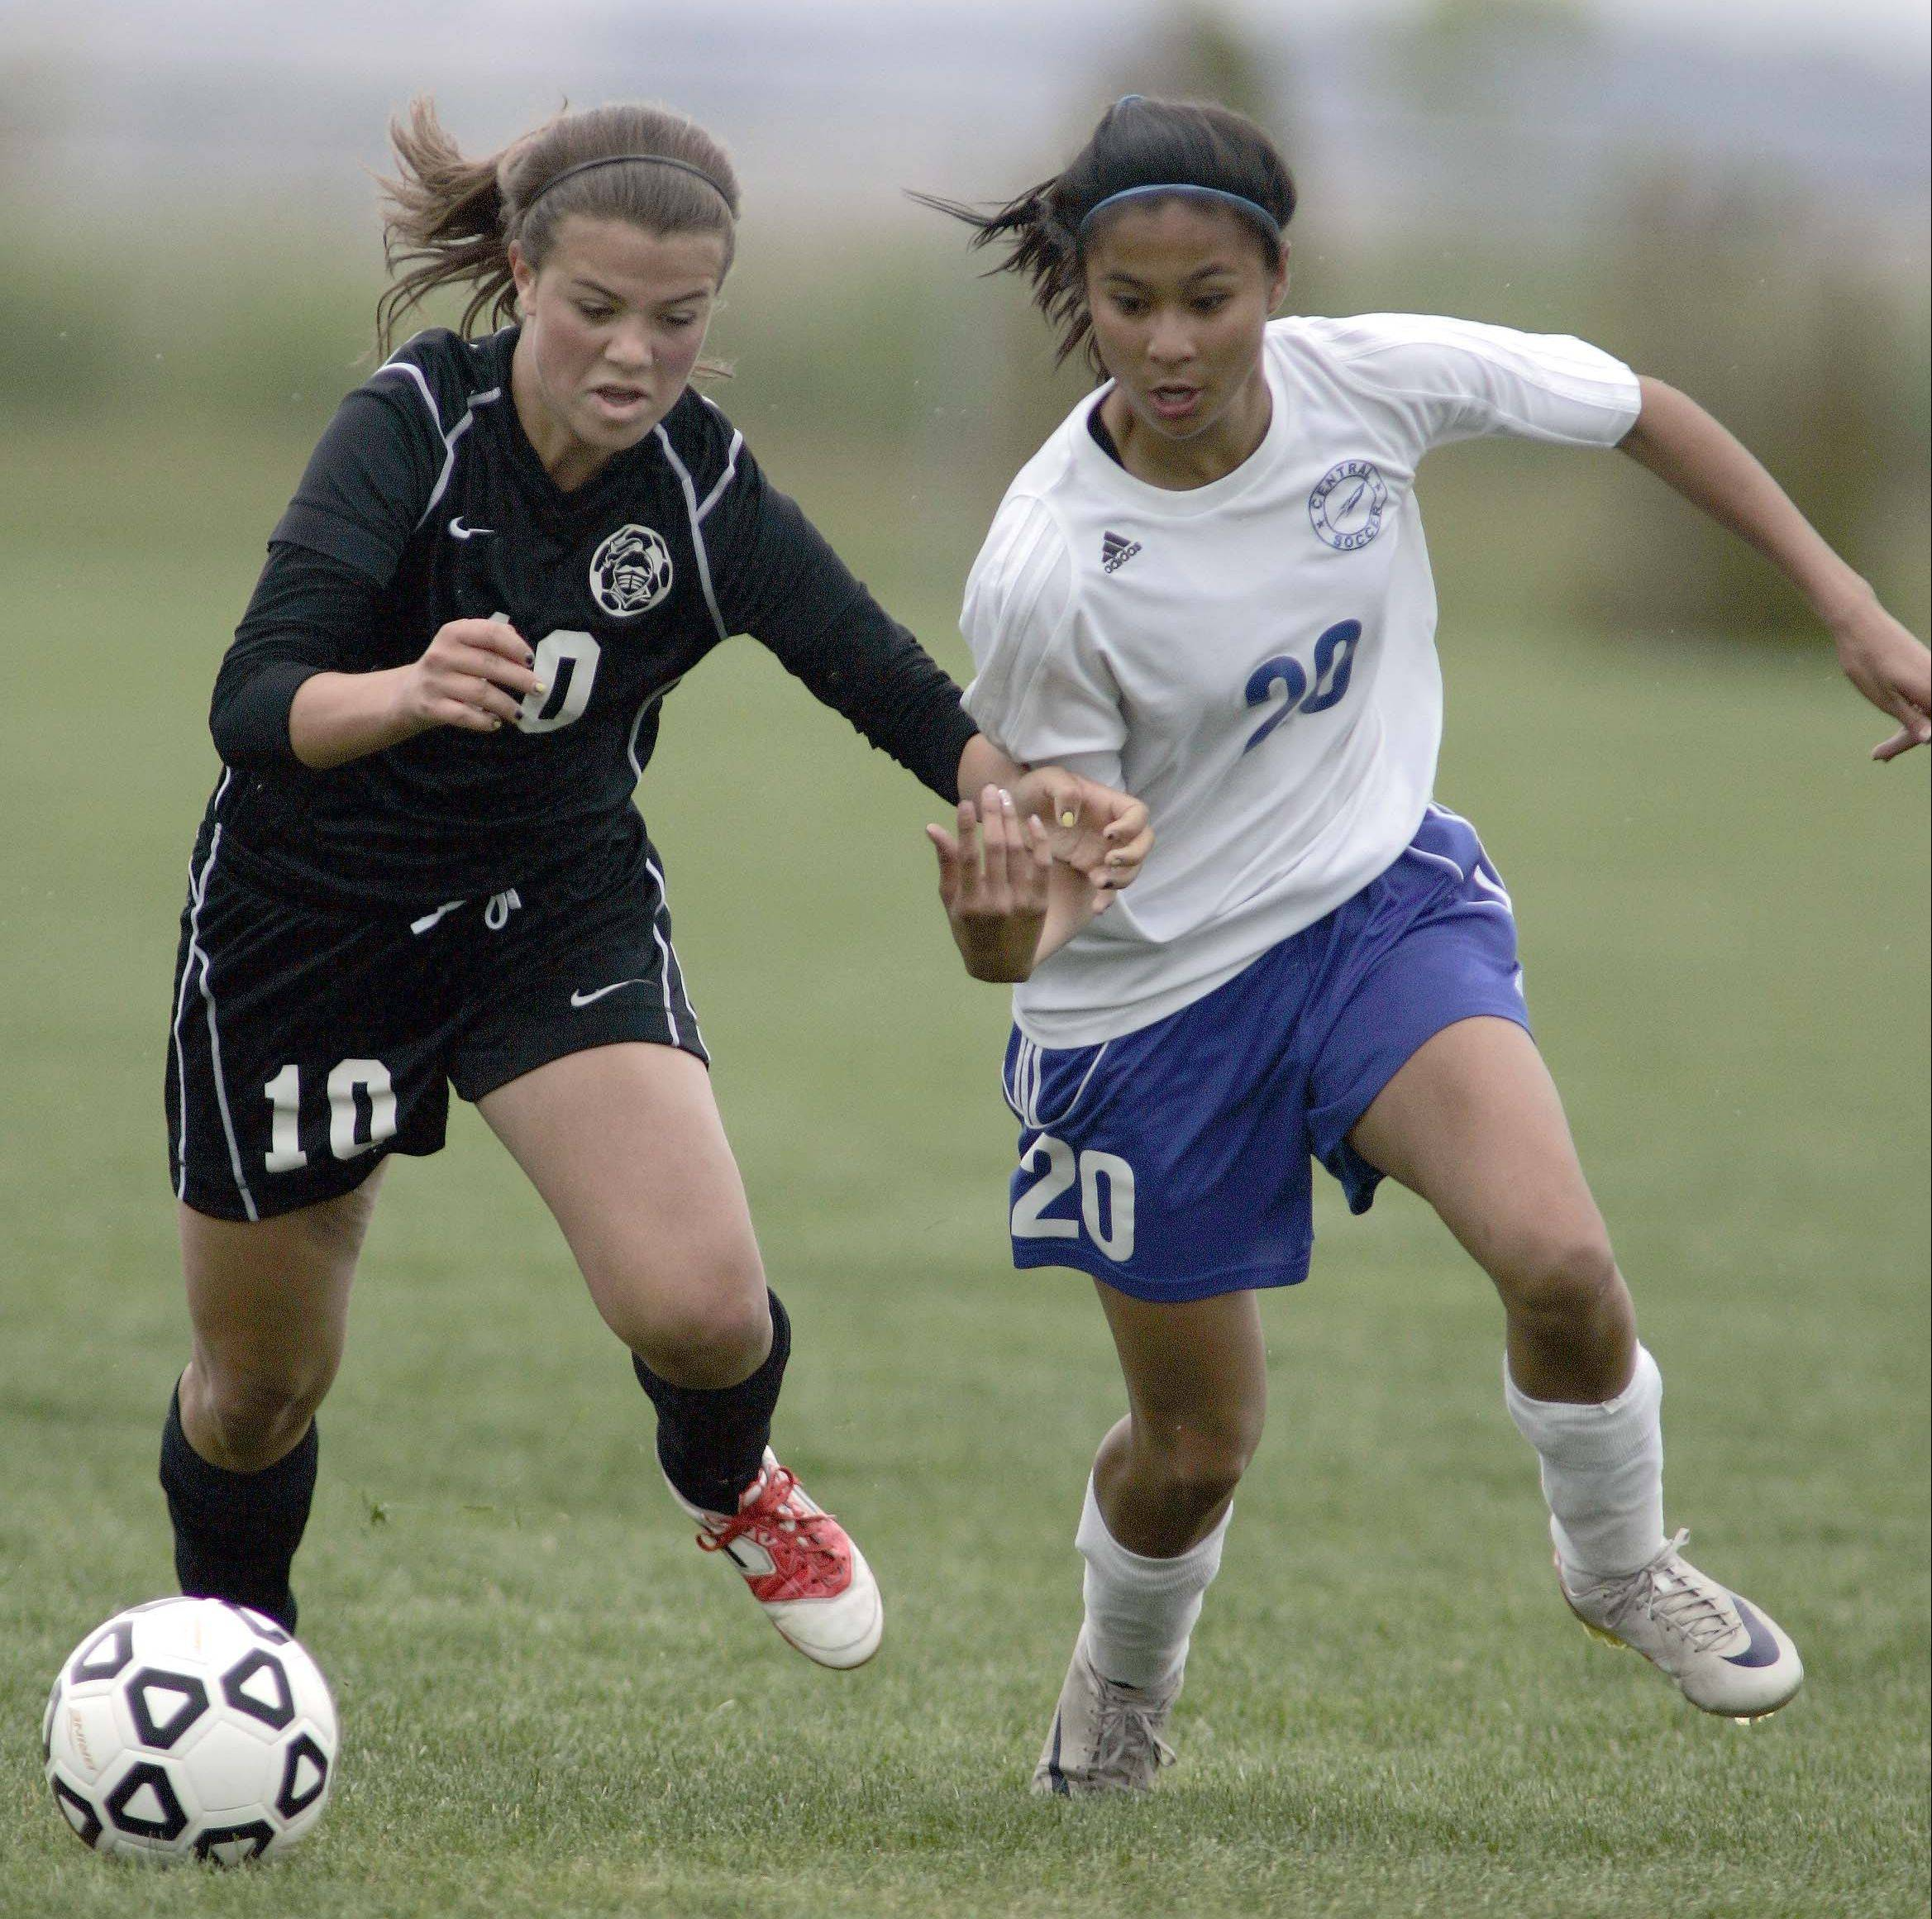 Burlington�s Camille Delacruz (20), a Northern Iowa signee, pushes past Kaneland�s Michelle Ortiz during a game last season.